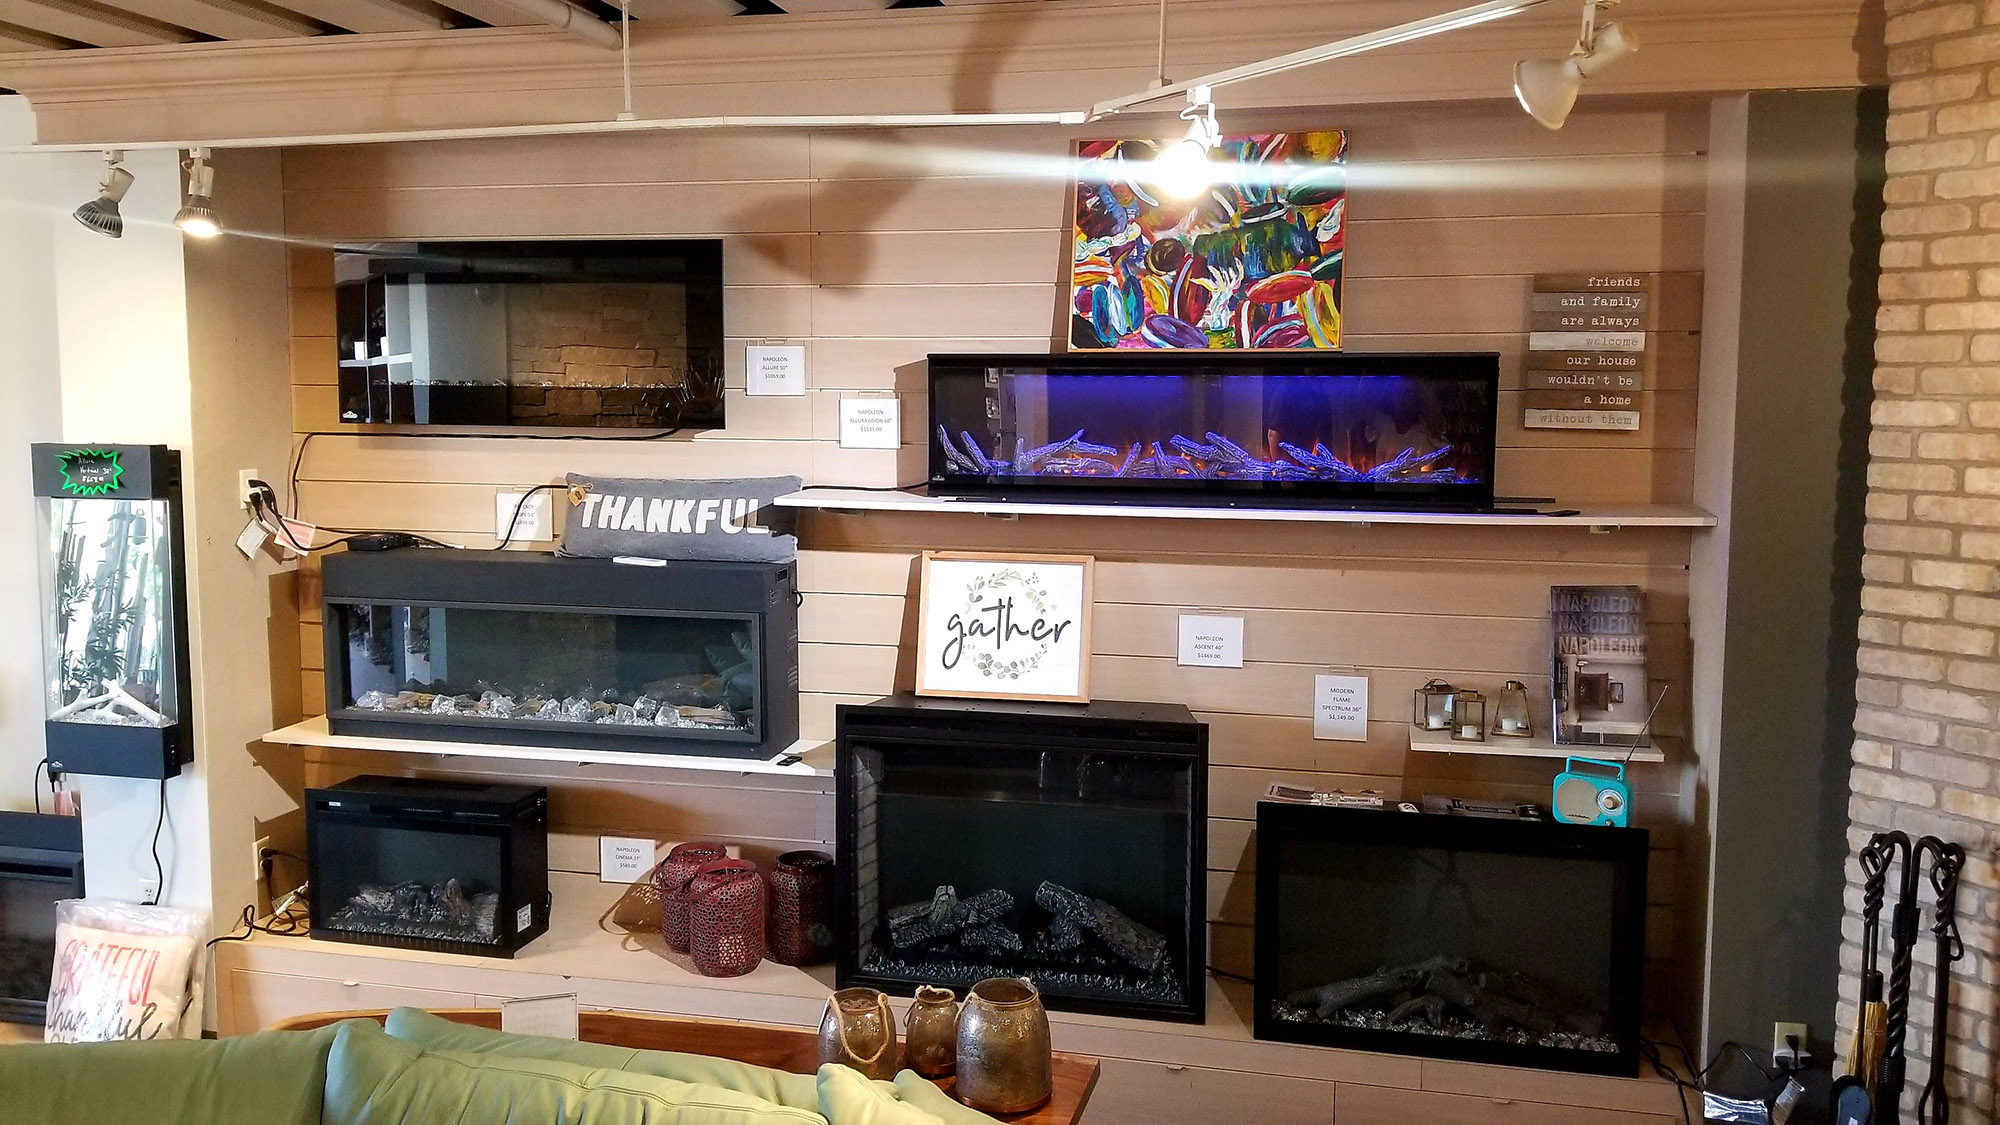 showroom display of electric fireplaces at landscaping supply store